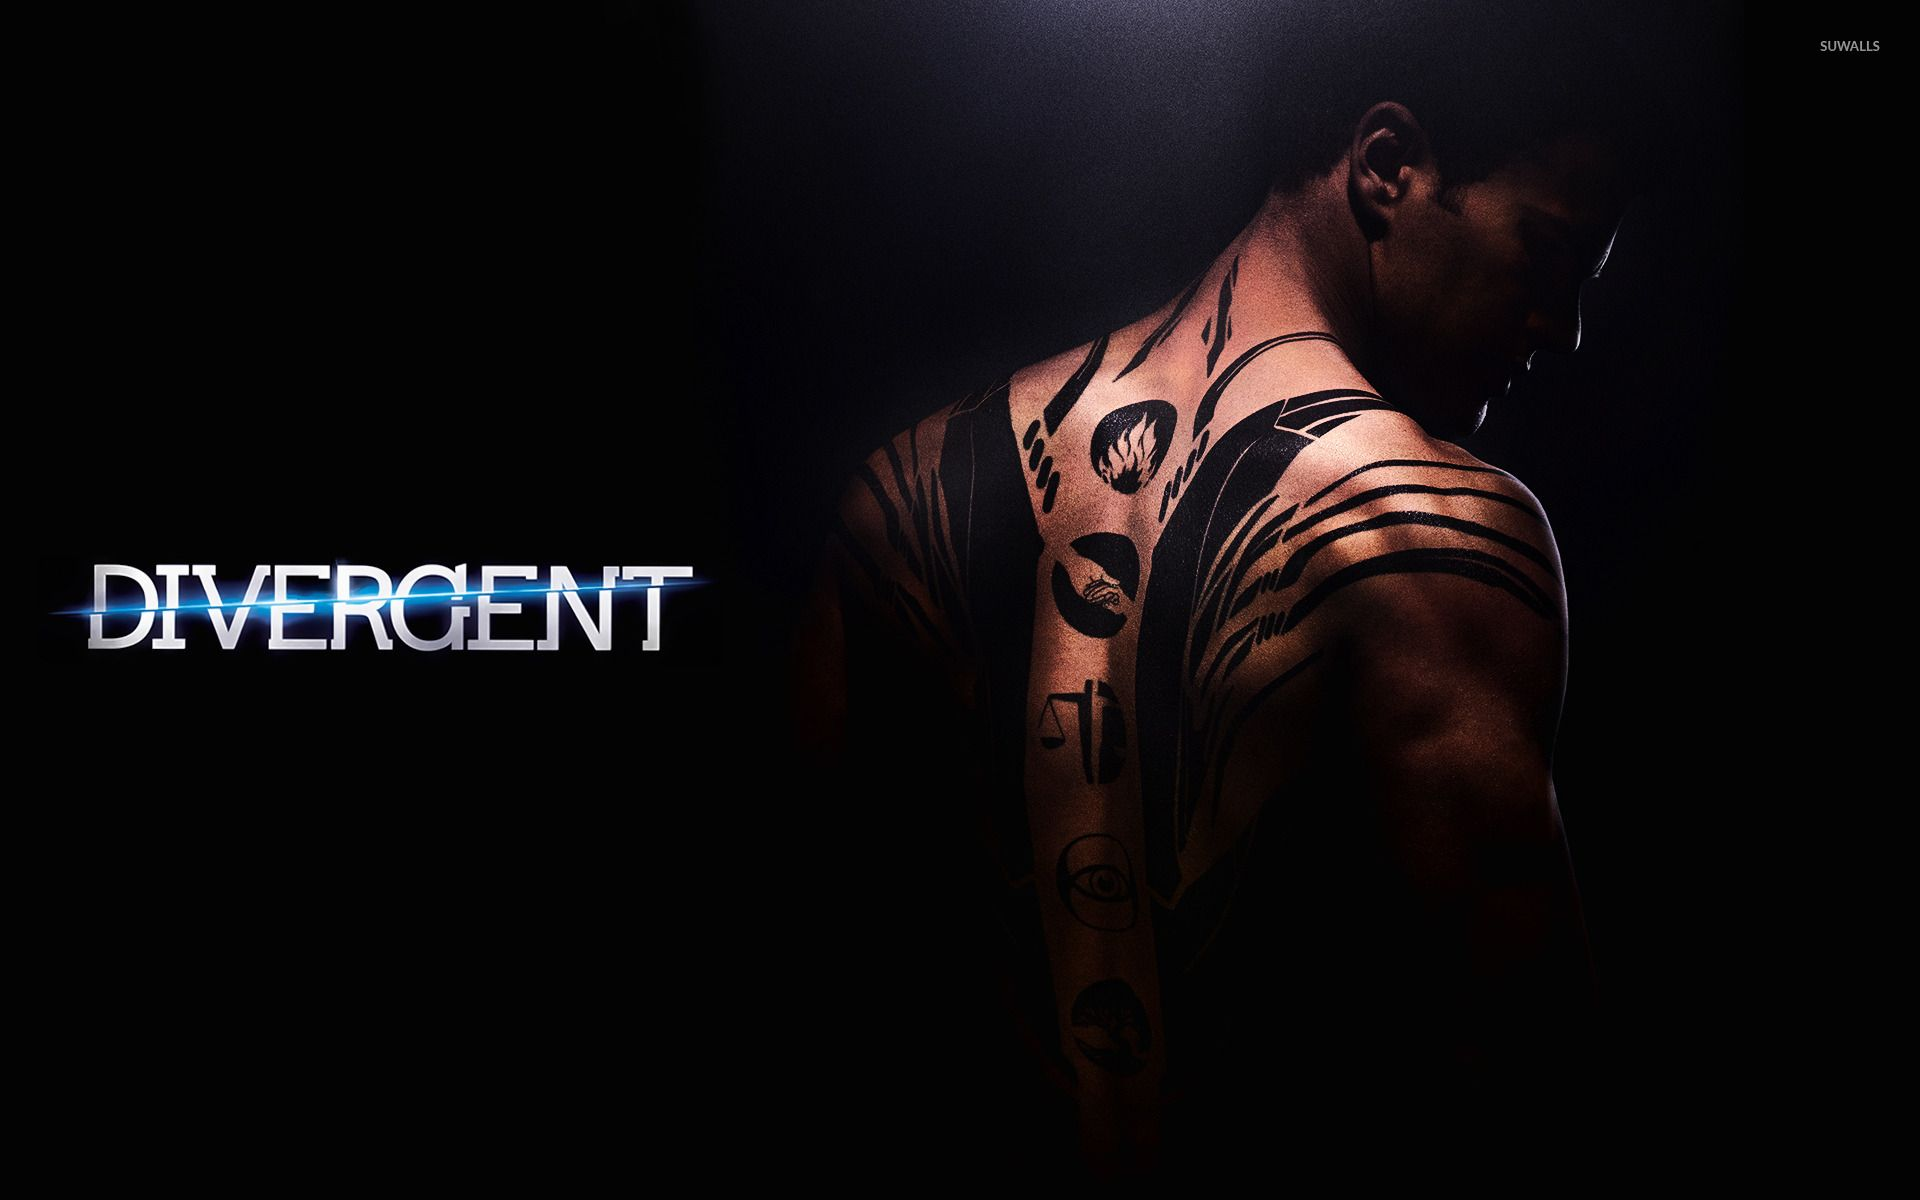 Four divergent wallpaper movie wallpapers 29664